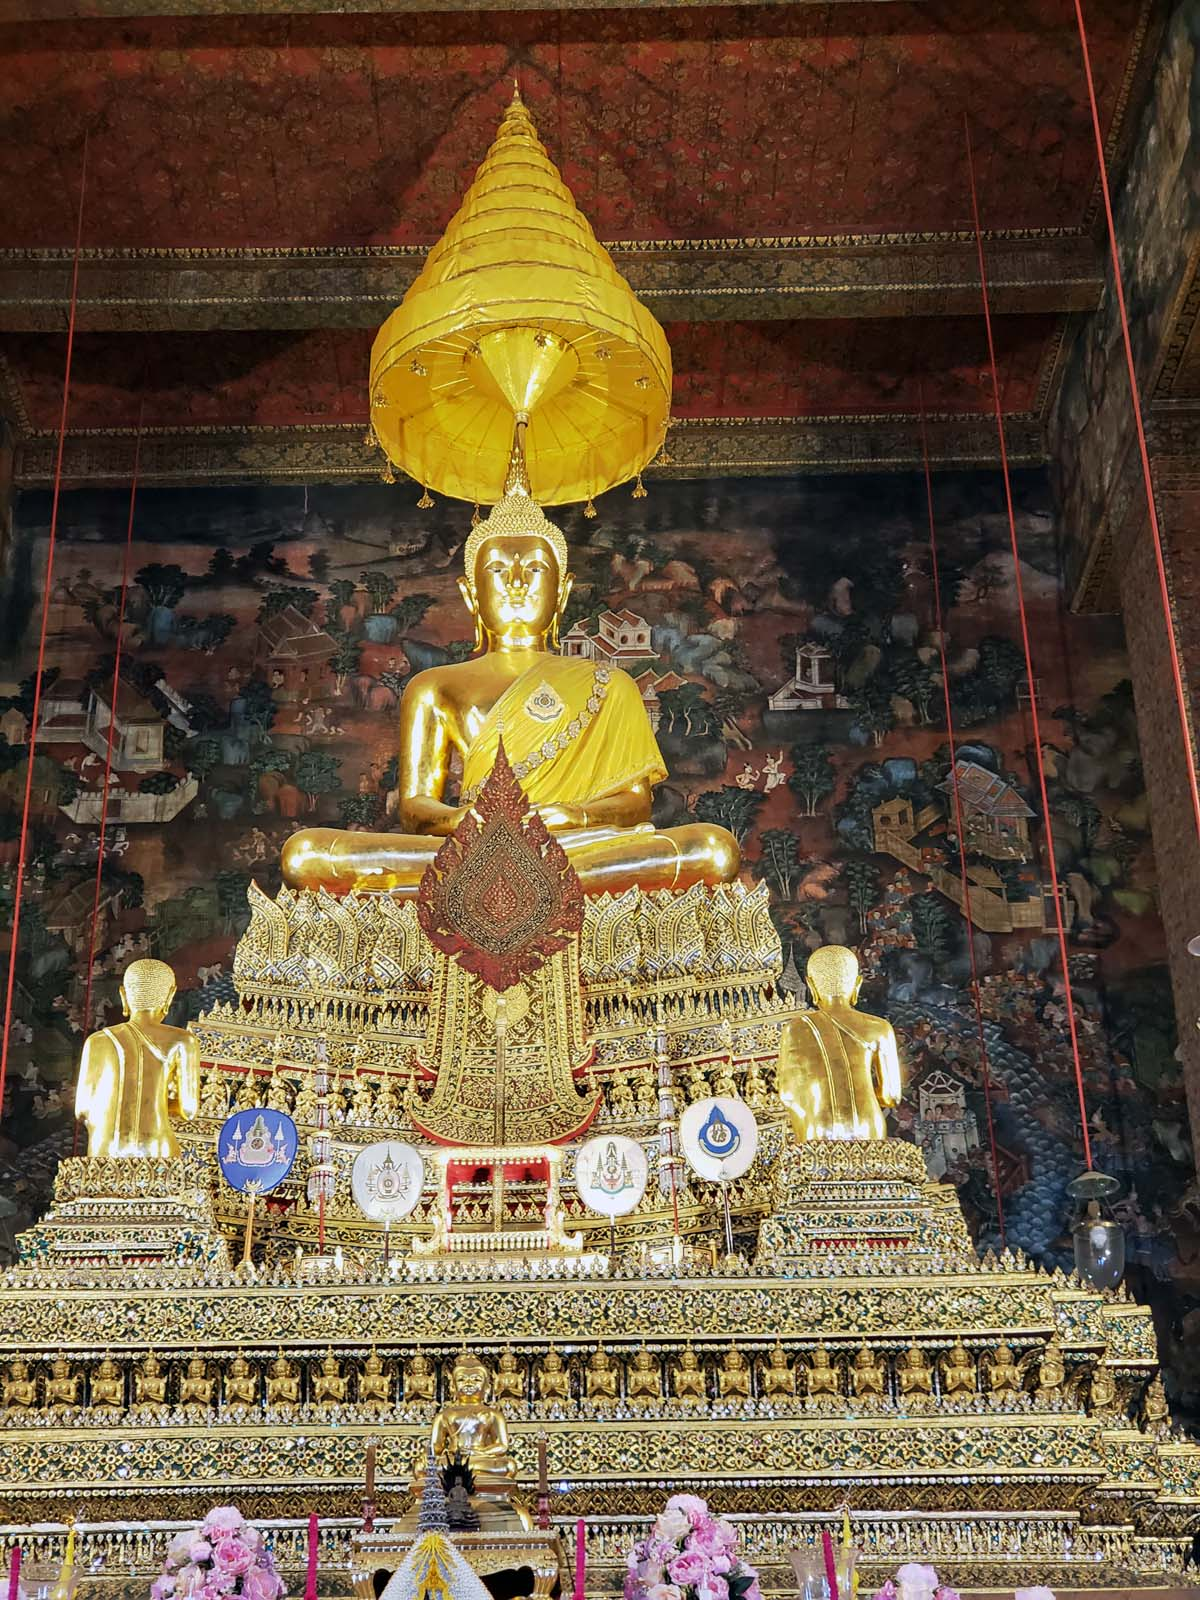 Another Buddha image at Wat Pho